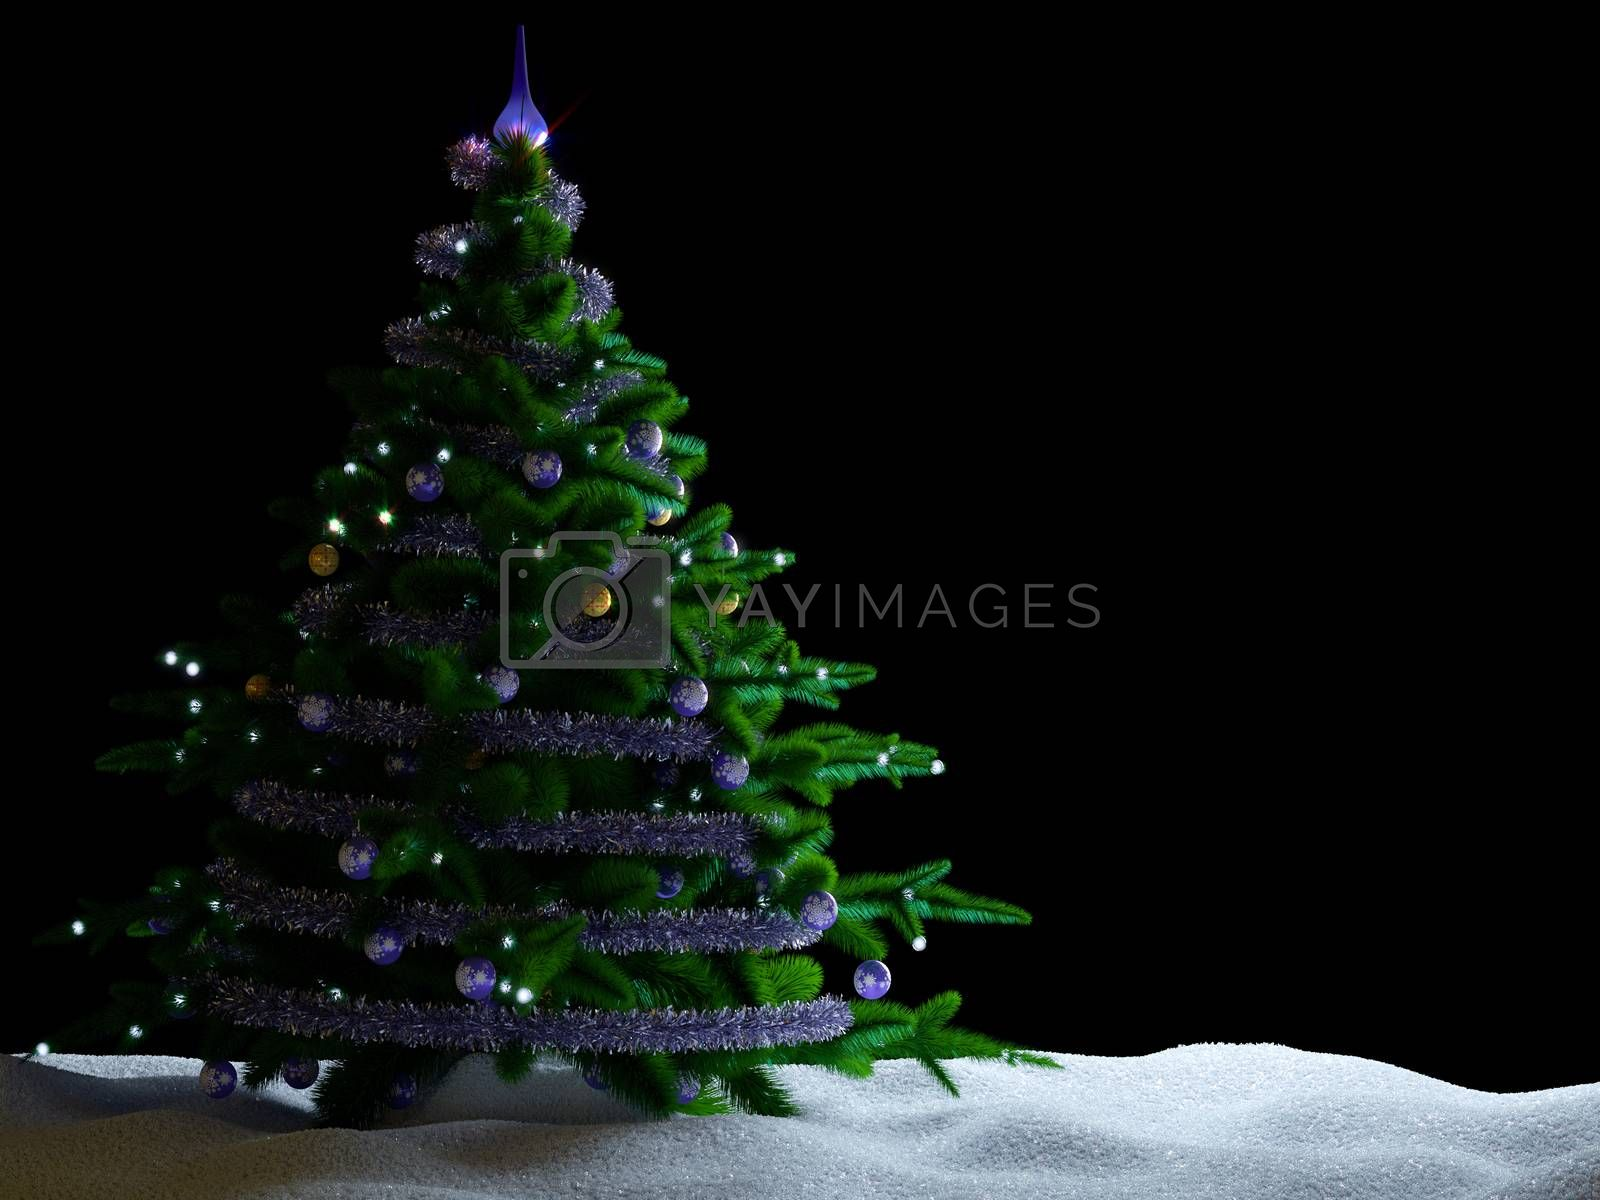 Christmas tree with decorations and snow on isolate black background.